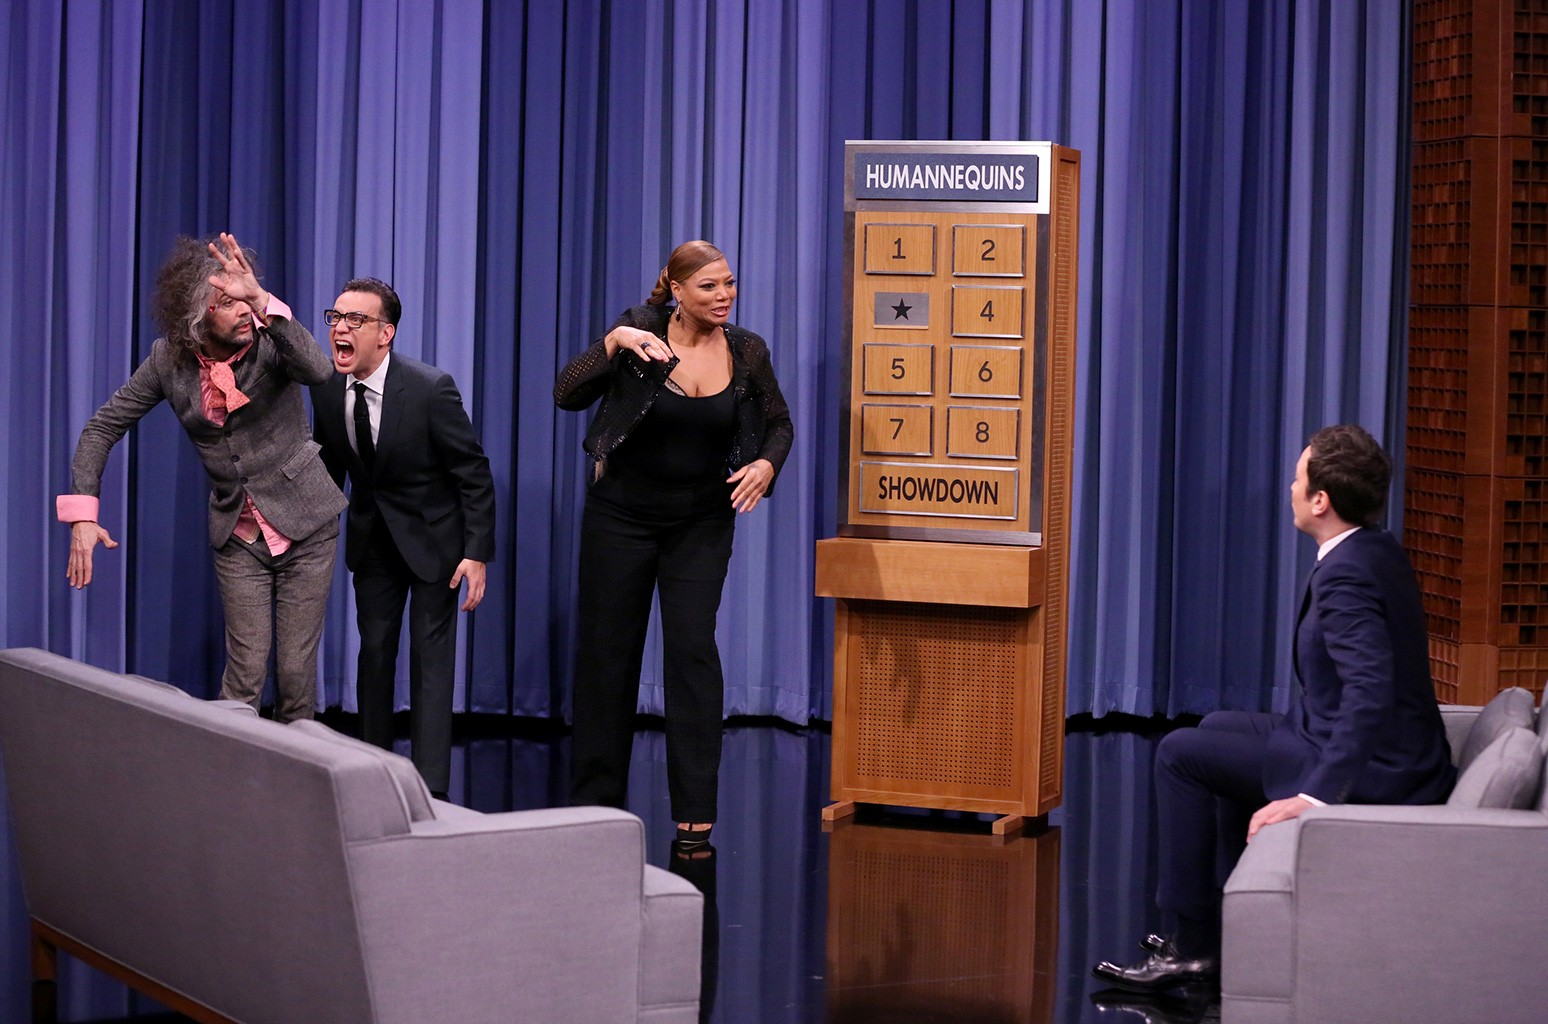 Wayne Coyne of The Flaming Lips, Fred Armisen, Queen Latifah and Jimmy Fallon play humannequins on 'The Tonight Show Starring Jimmy Fallon' on Jan. 10, 2017.